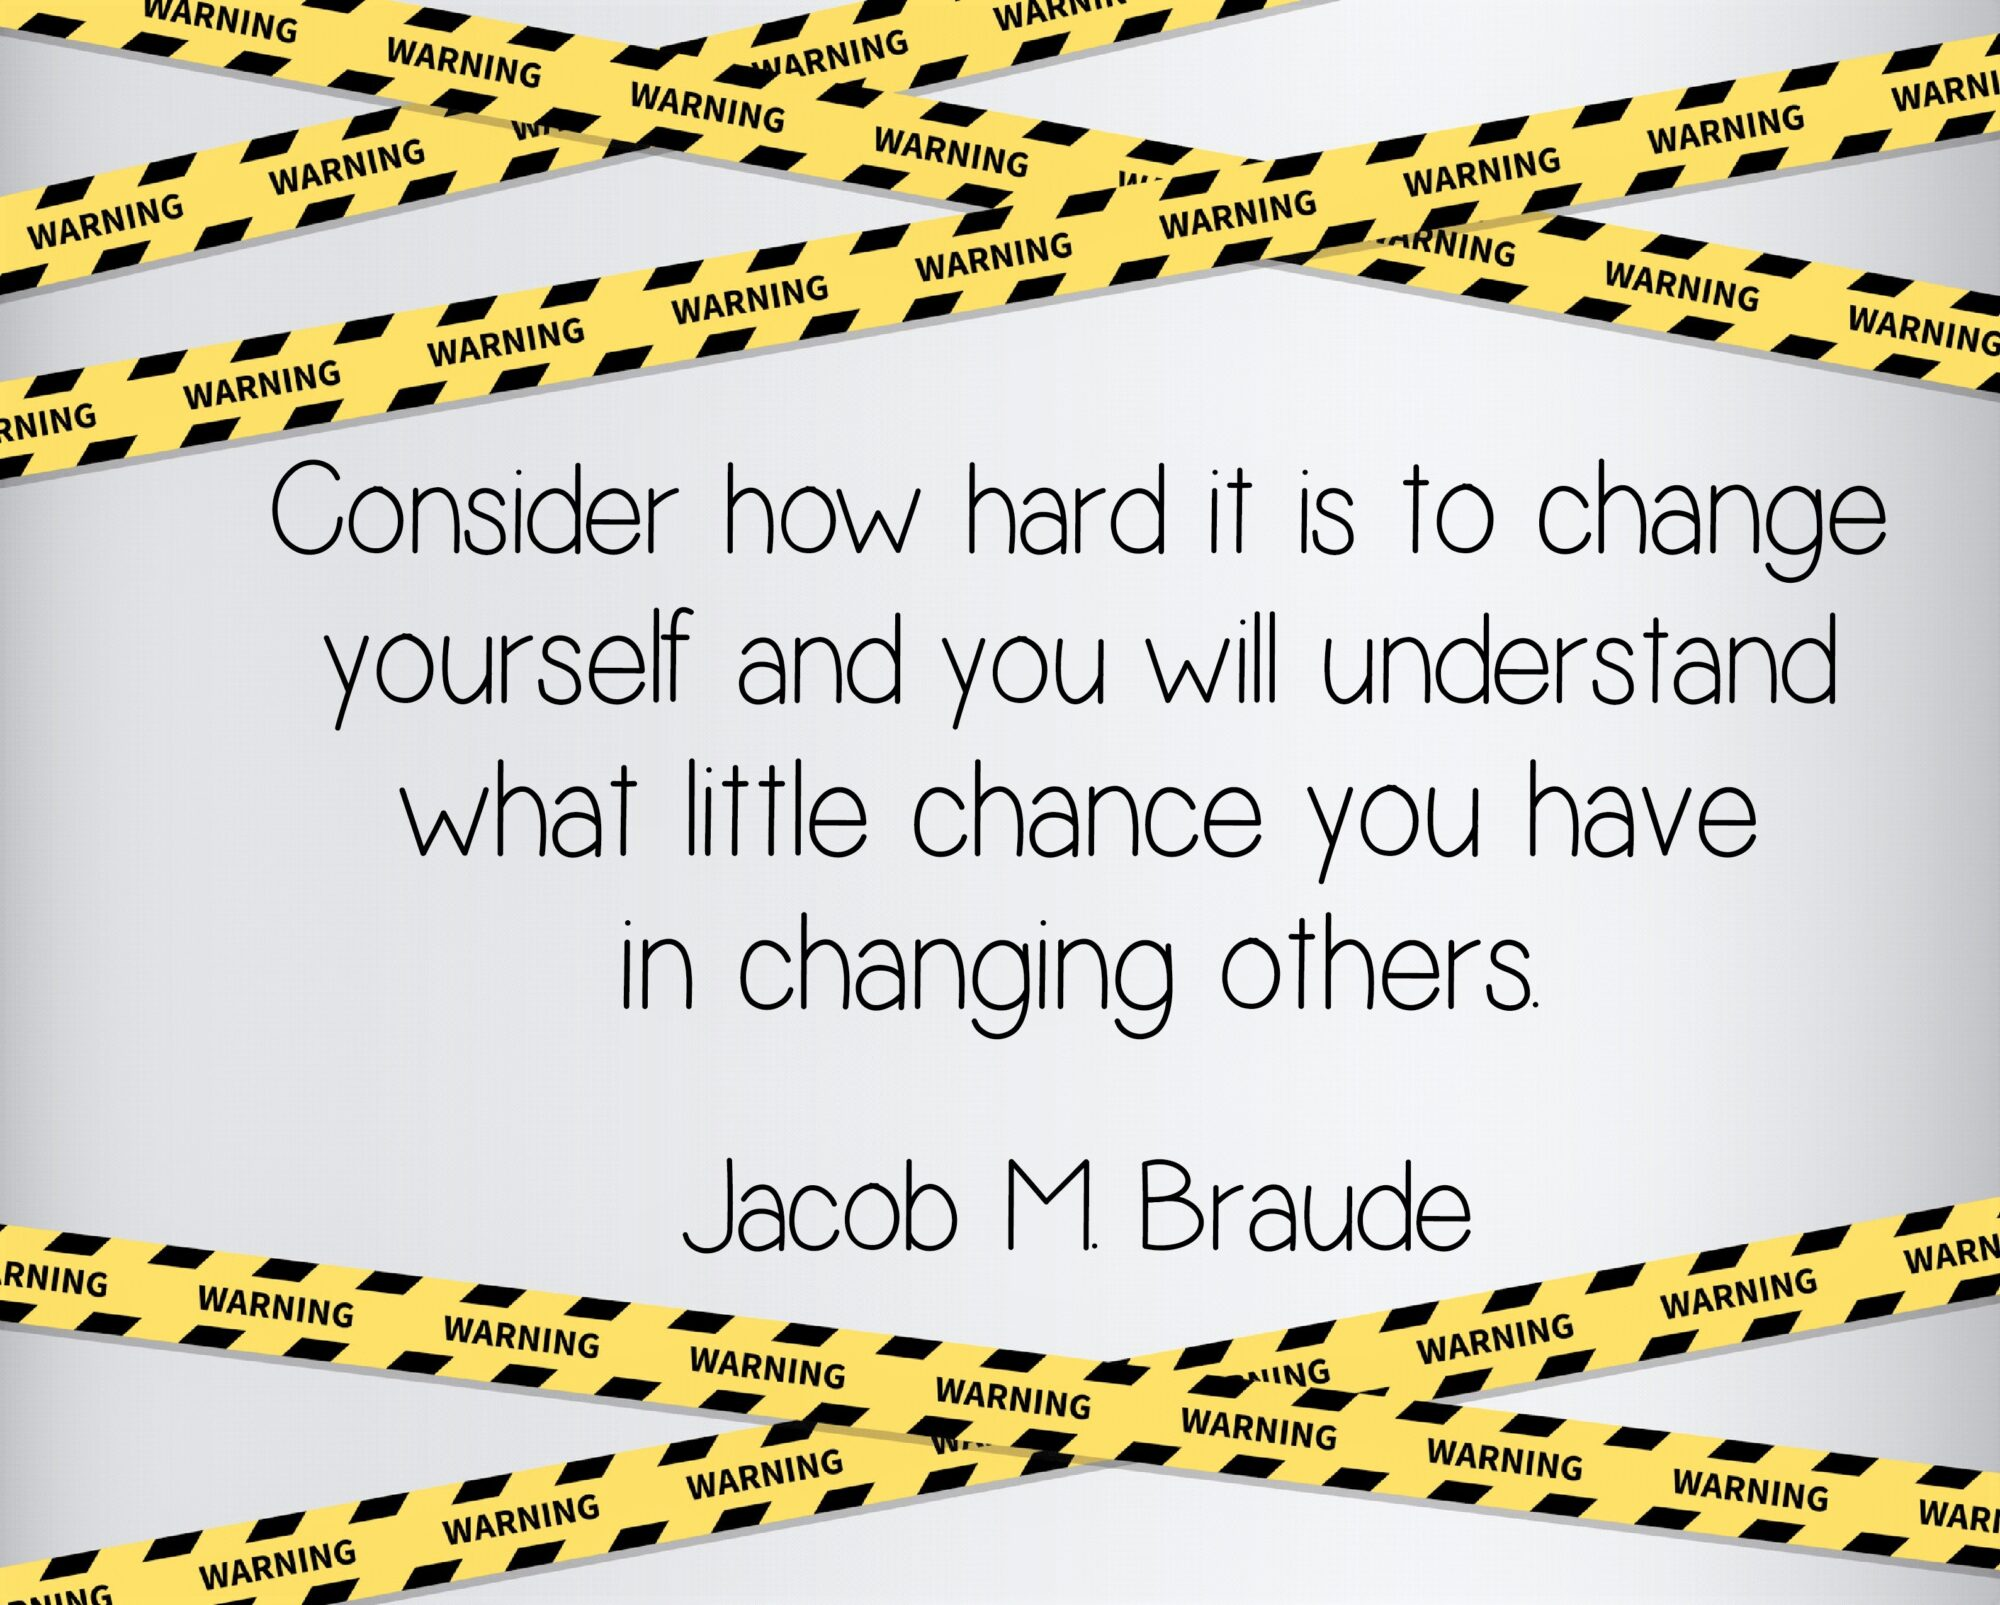 Consdier how hard it is to change yourself